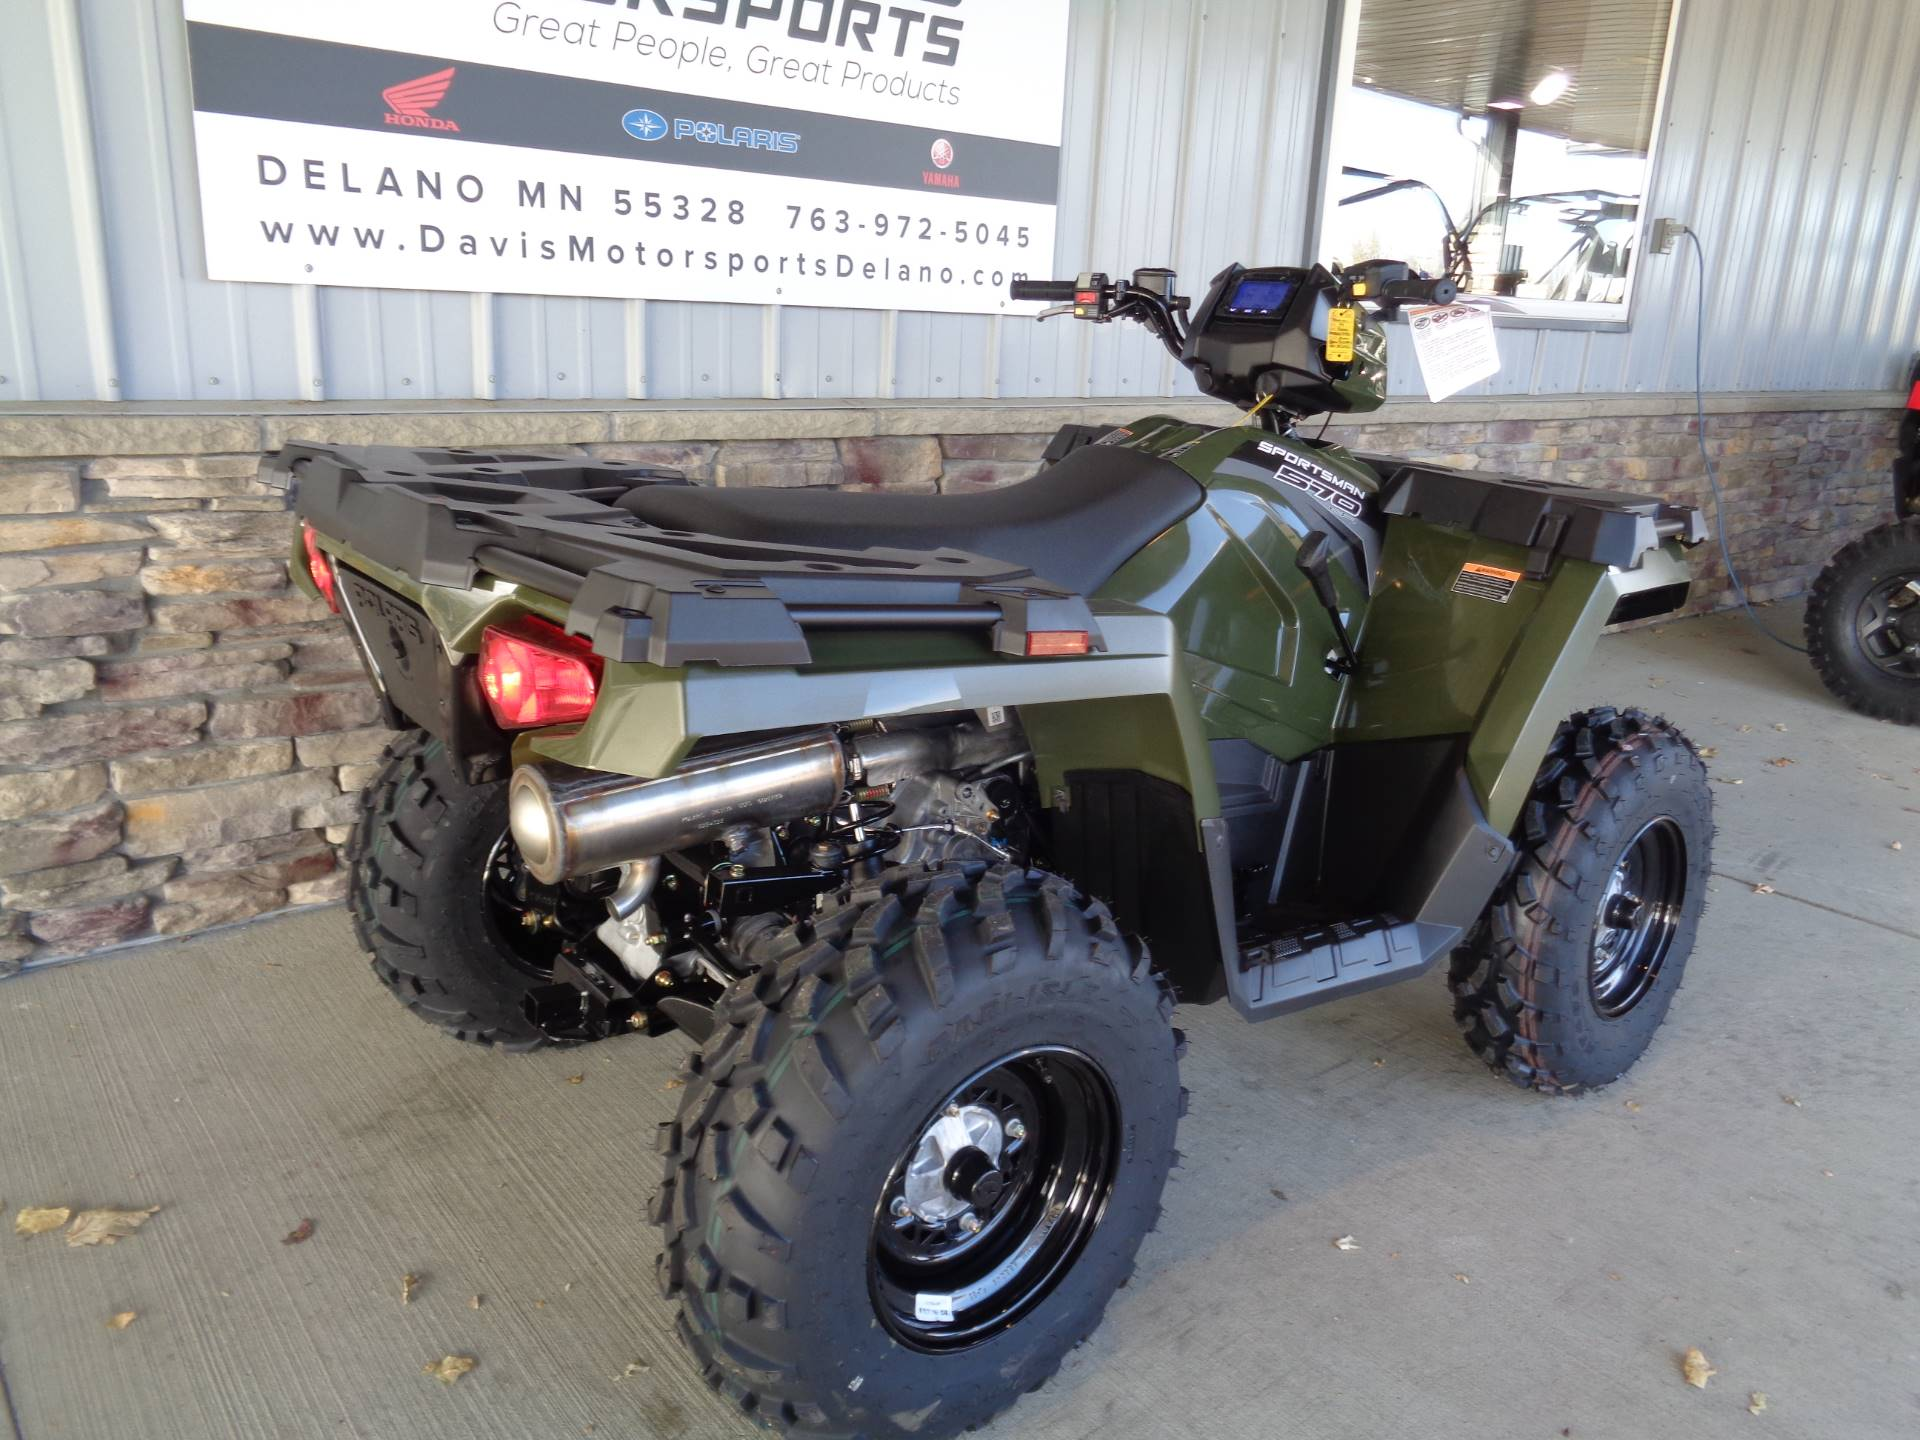 2019 Polaris Sportsman 570 in Delano, Minnesota - Photo 5